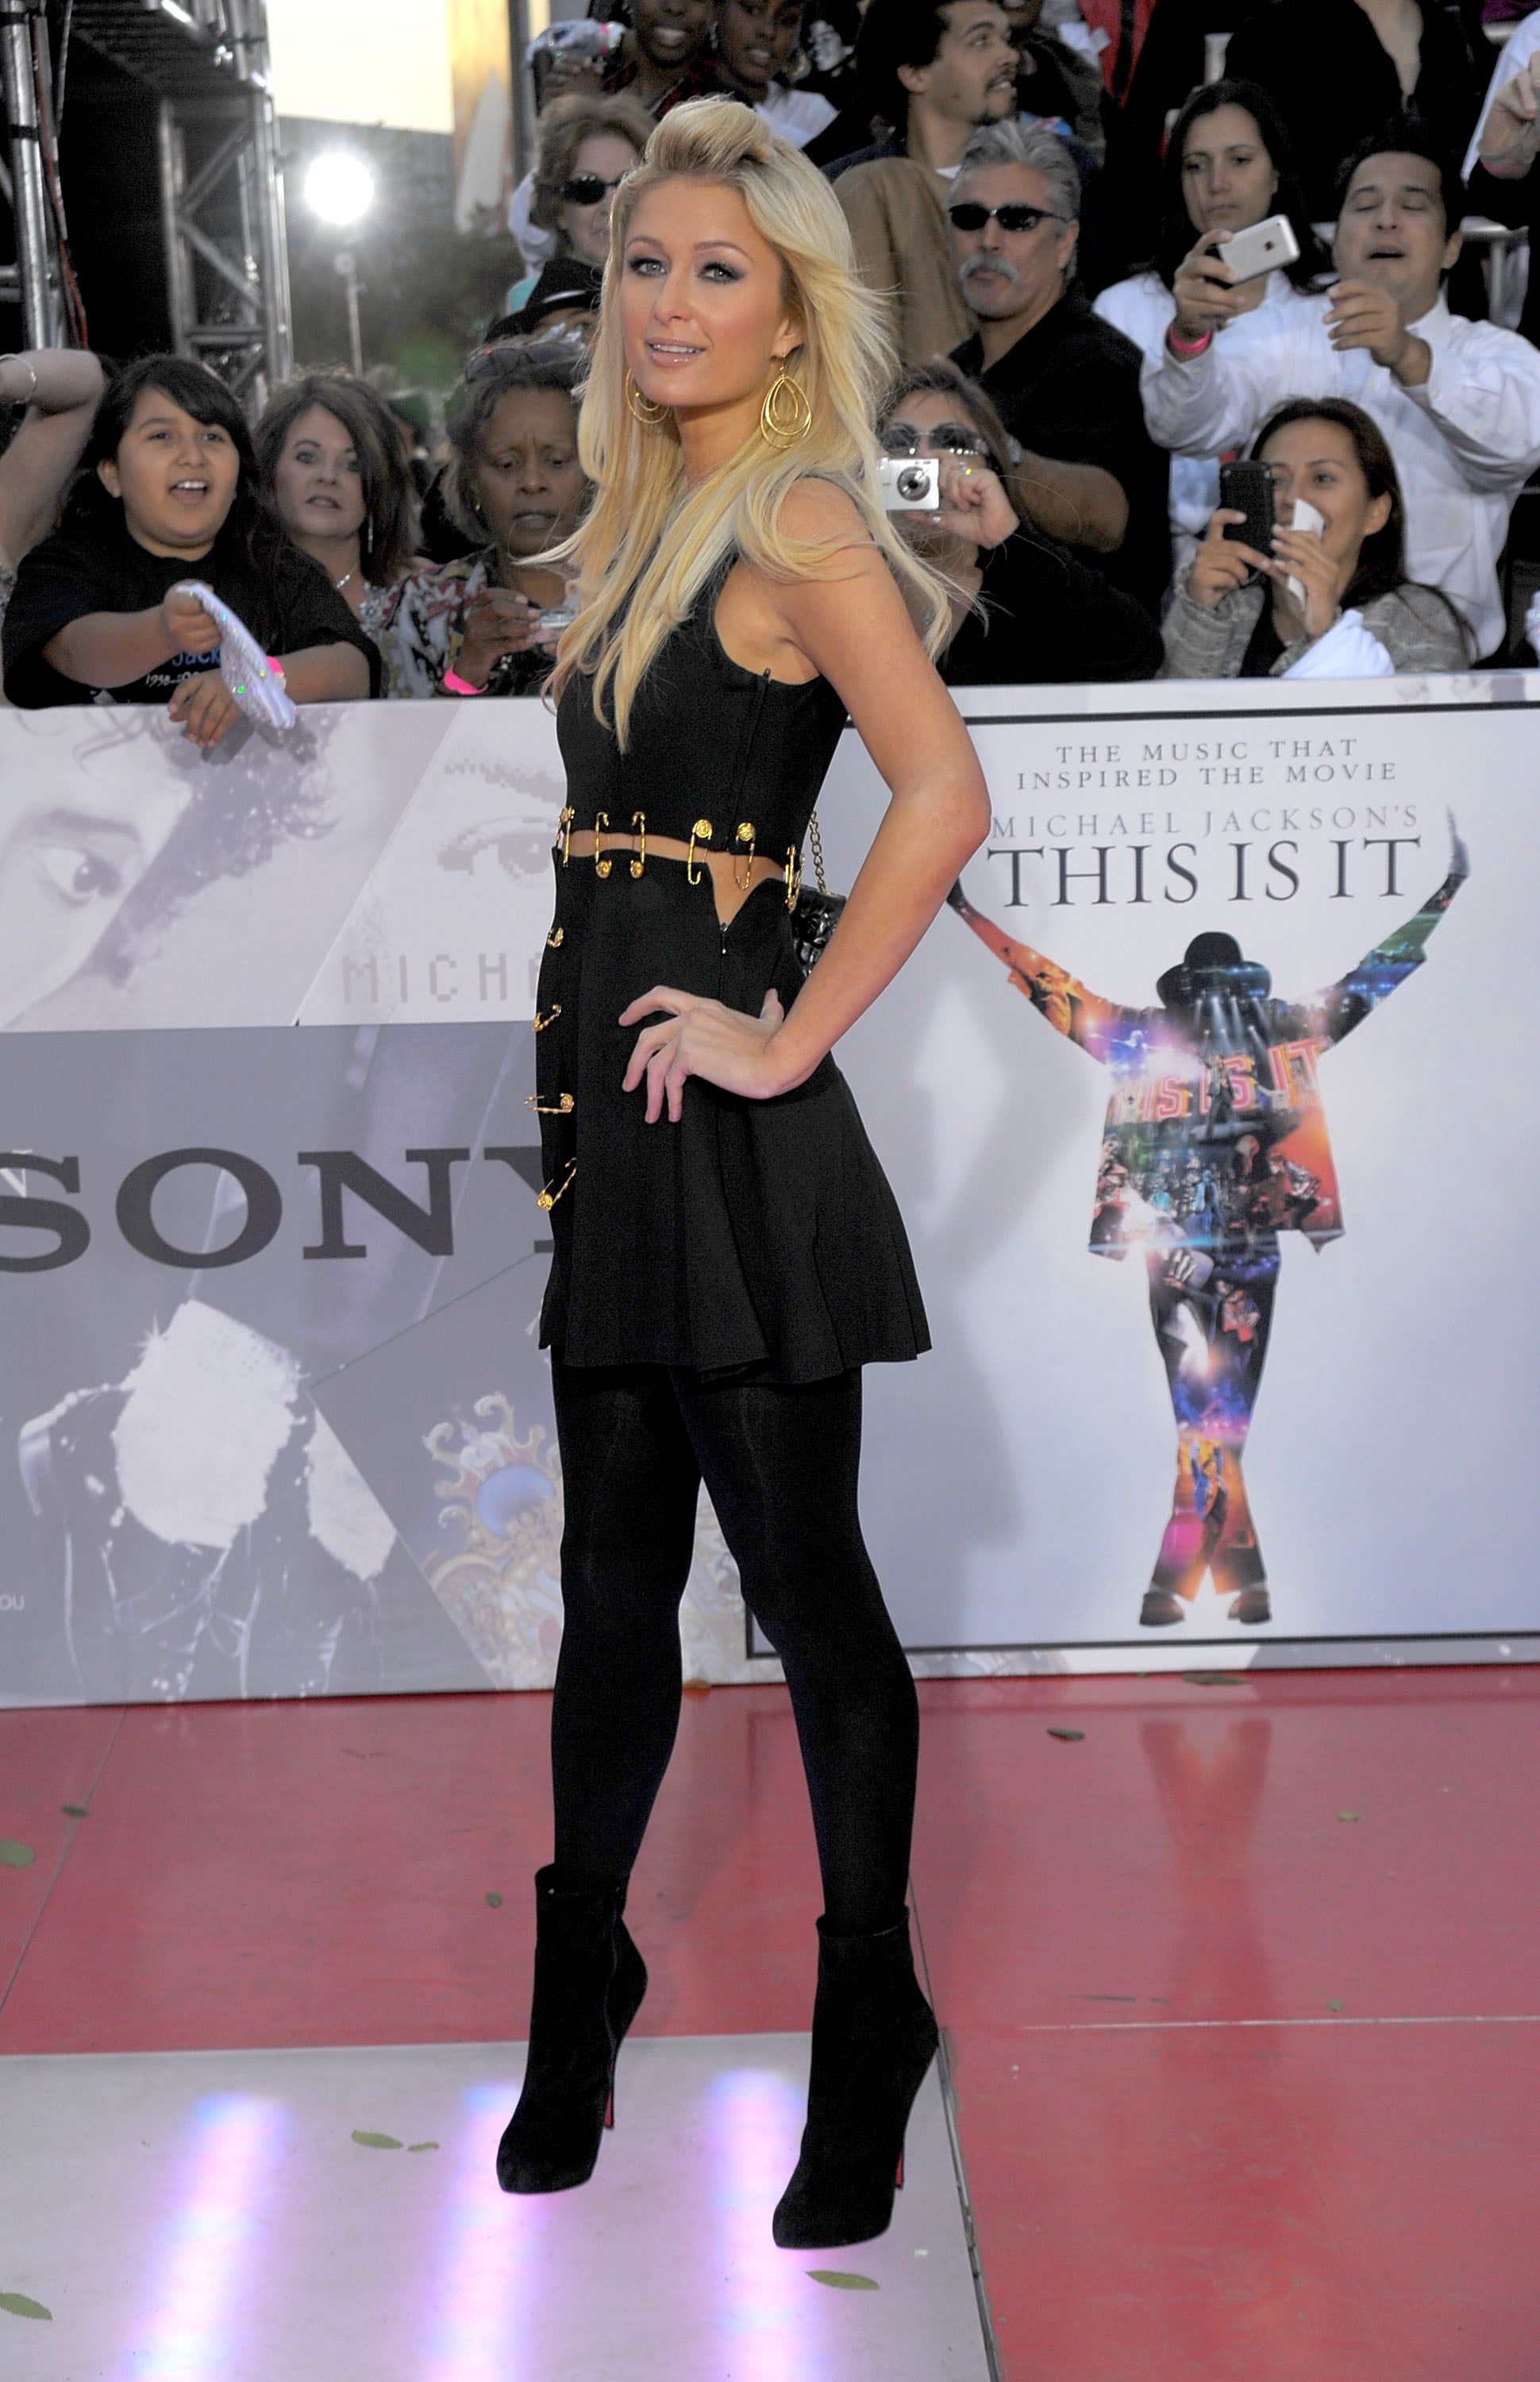 Photos Of La Red Carpet This Is It Premiere Paris Hilton